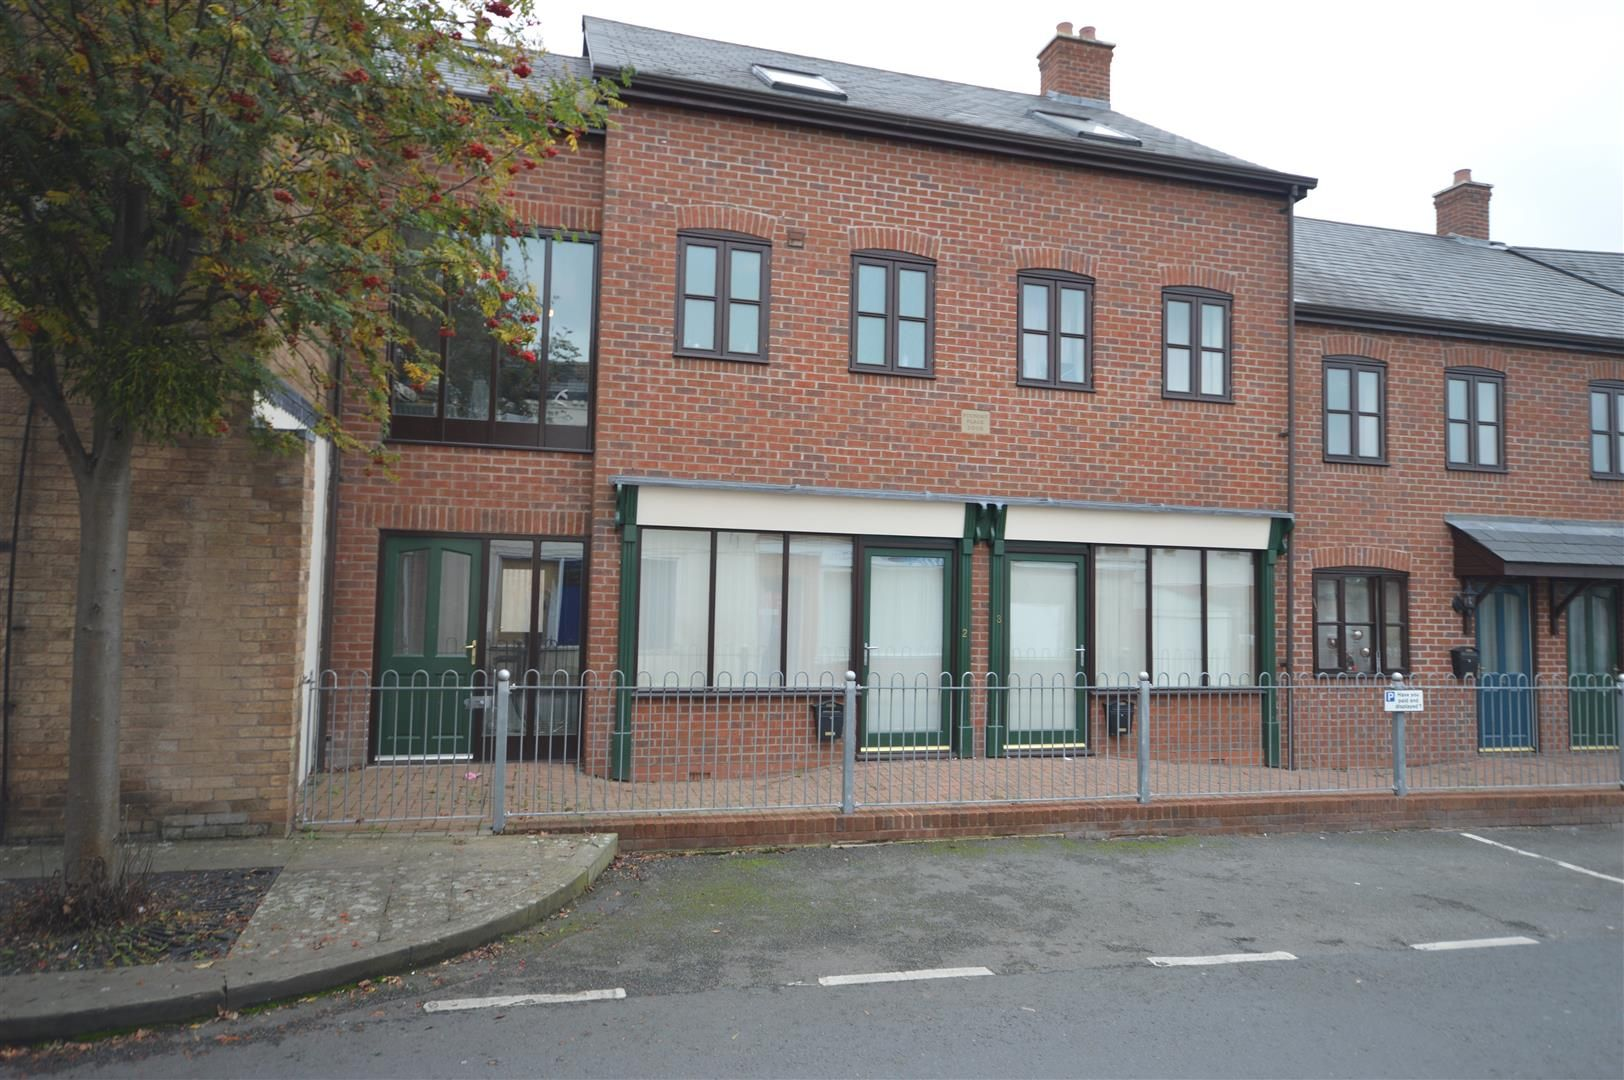 1 bed flat to rent in Leominster, HR6